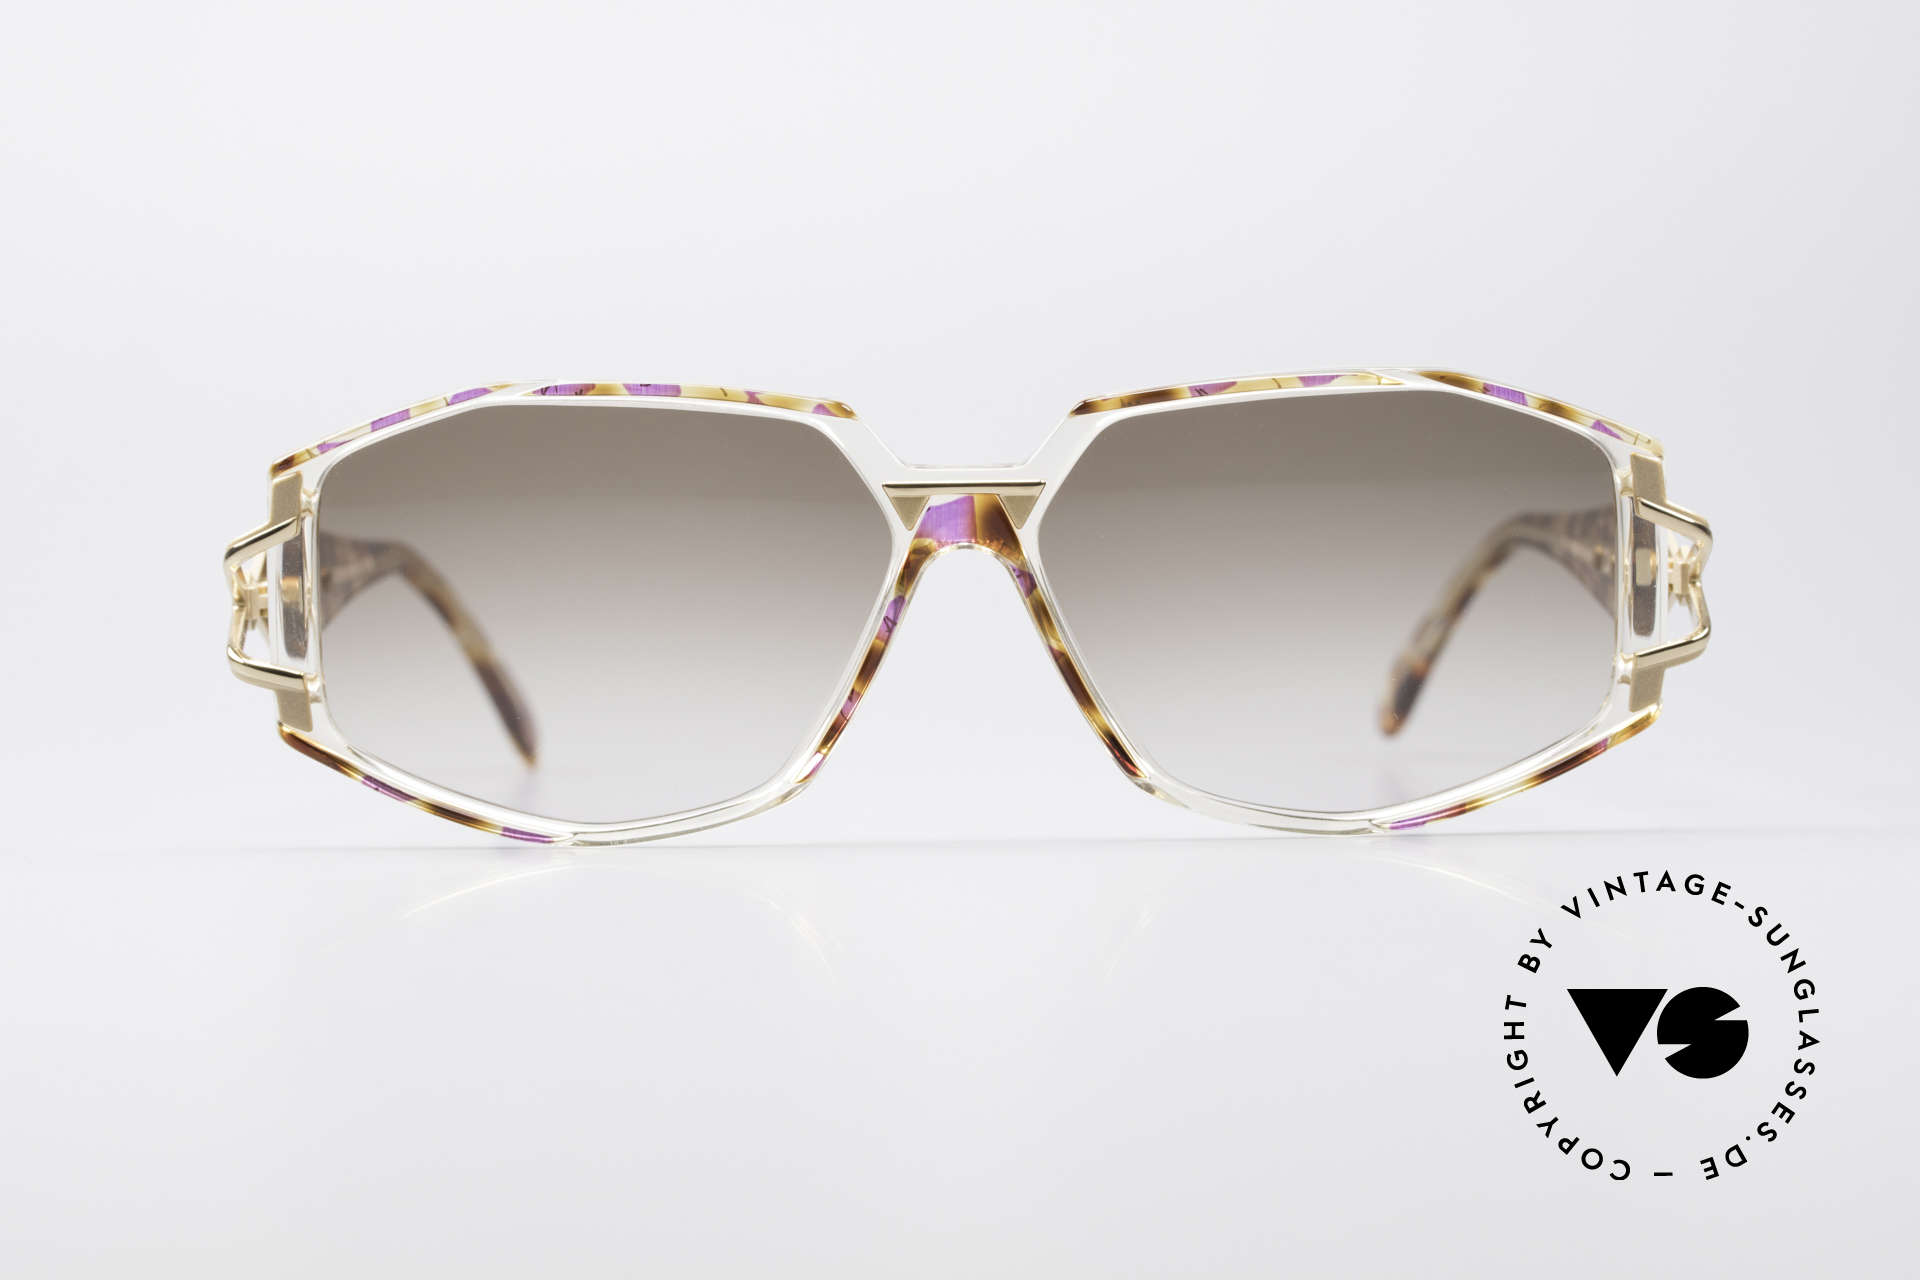 Cazal 368 Designer Shades Hip Hop Style, exciting design on the hinges of the arms; just unique, Made for Women